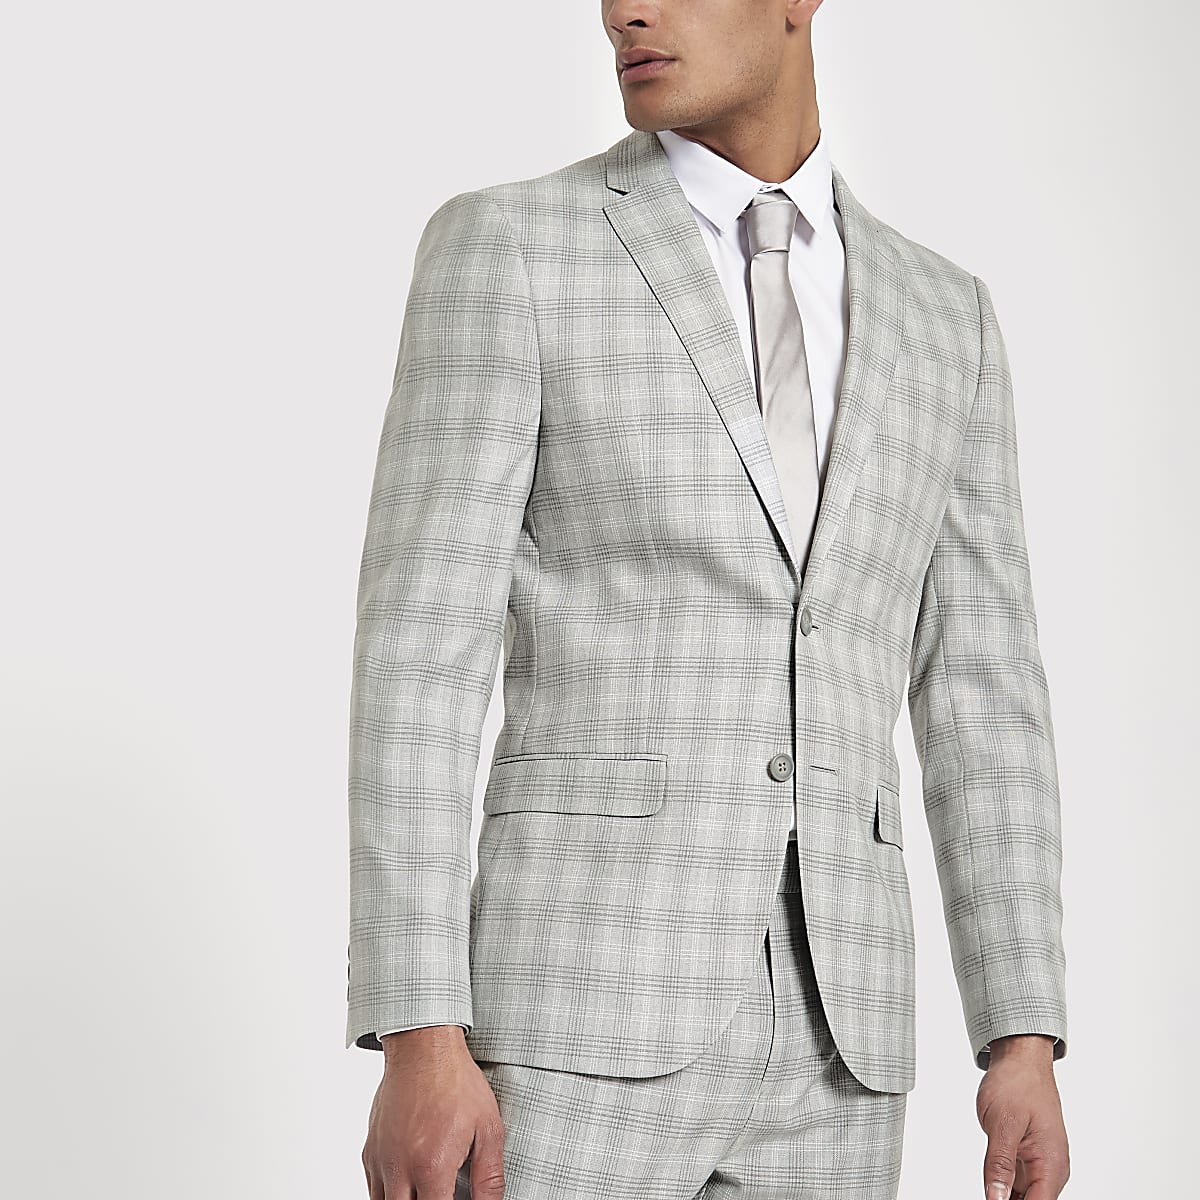 e20f7a2cb258 Light grey check slim fit suit jacket - Suit Jackets - Suits - men